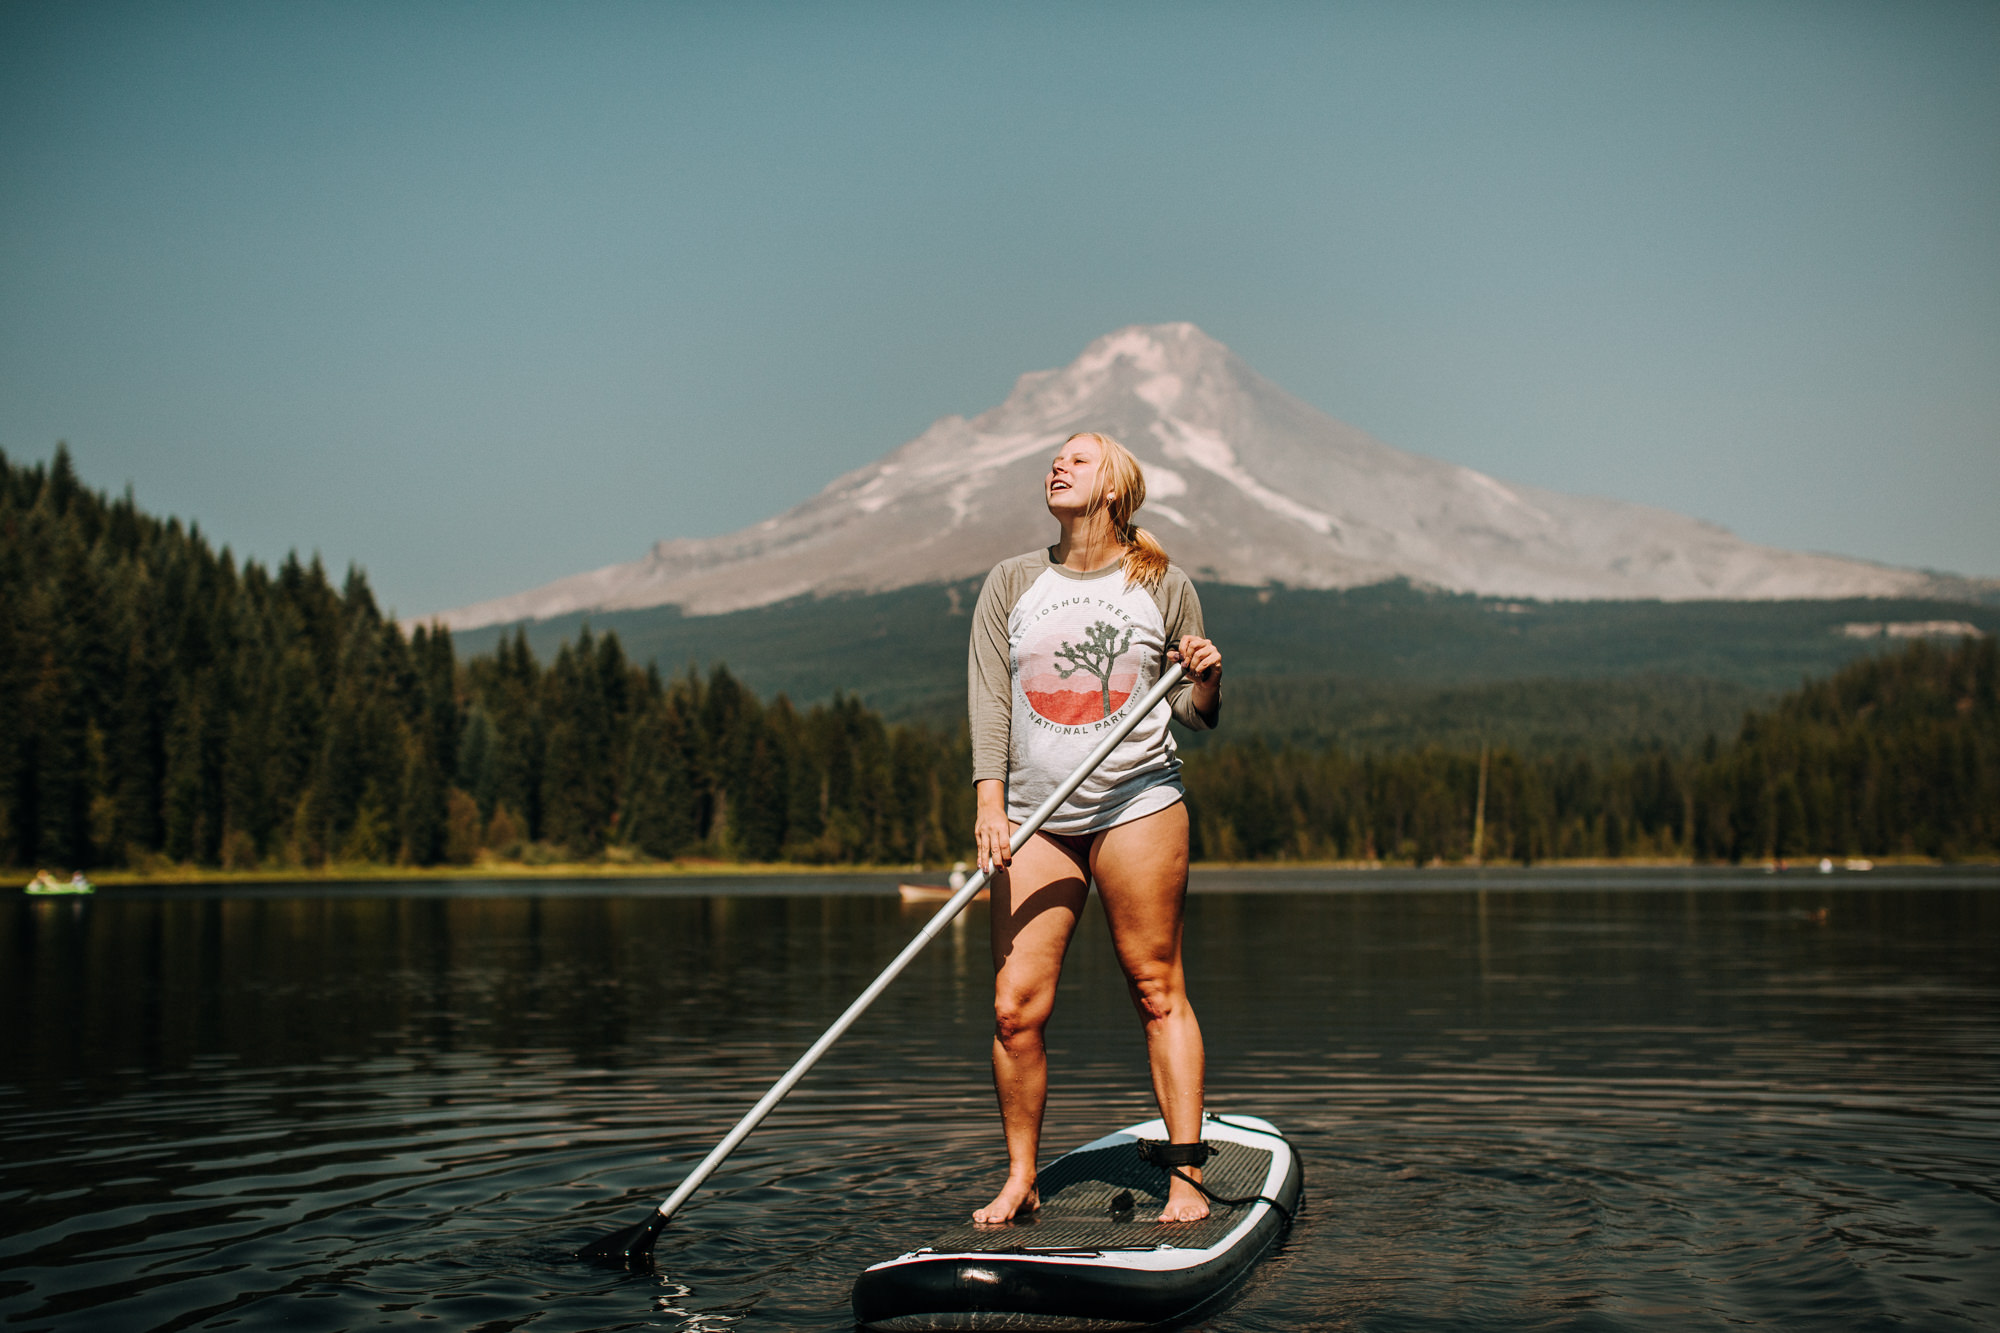 Standup Paddle Board and Parks Project commercial product photographer at Trillium Lake near Mount Hood Oregon